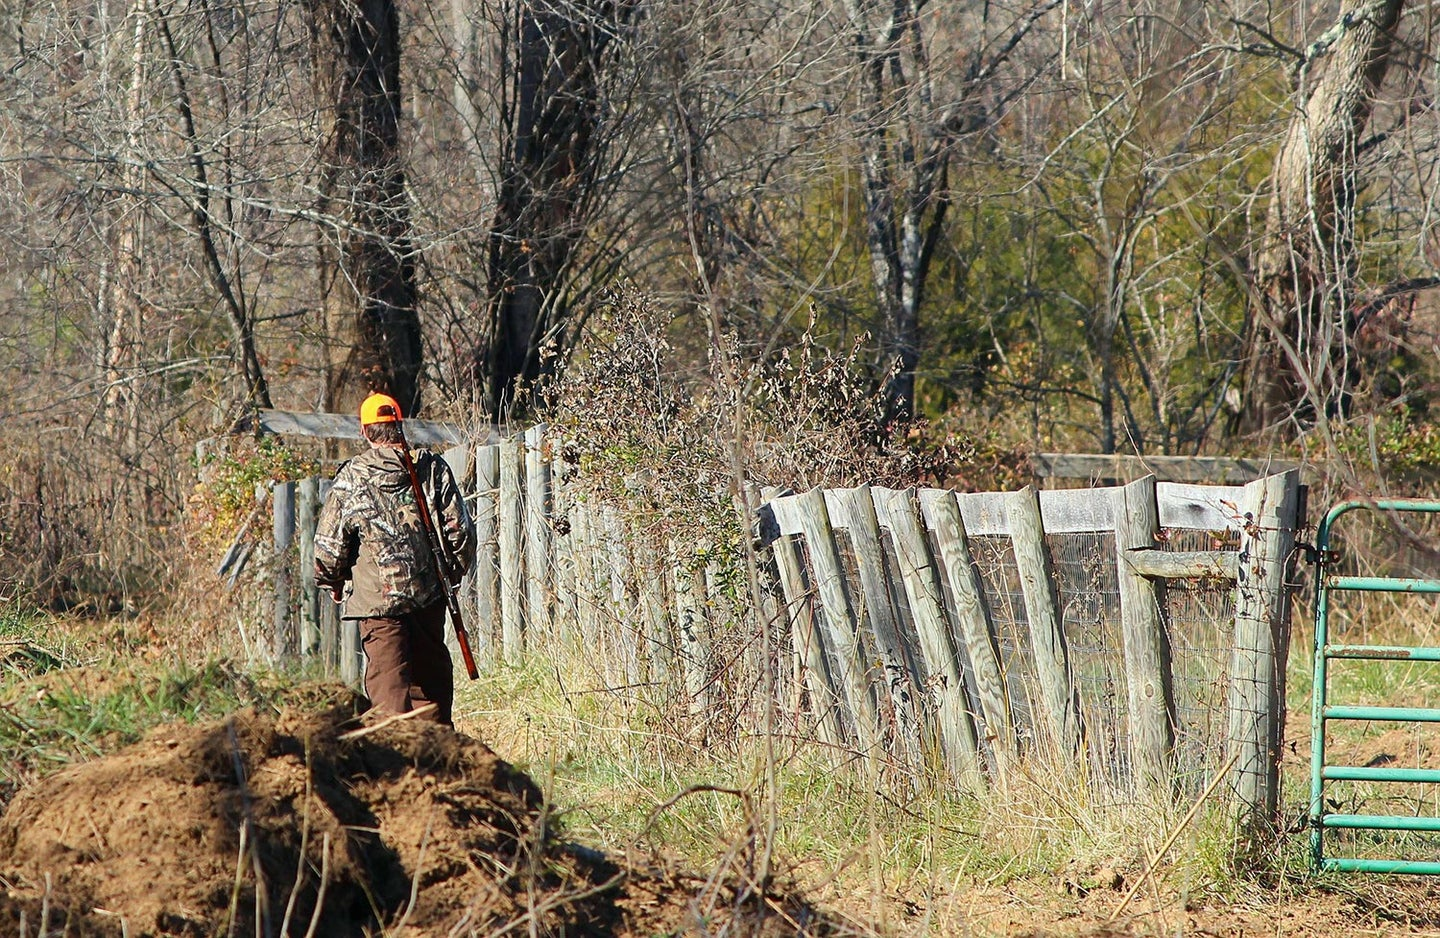 A hunter walking on a fence line with a rifle over their shoulder.